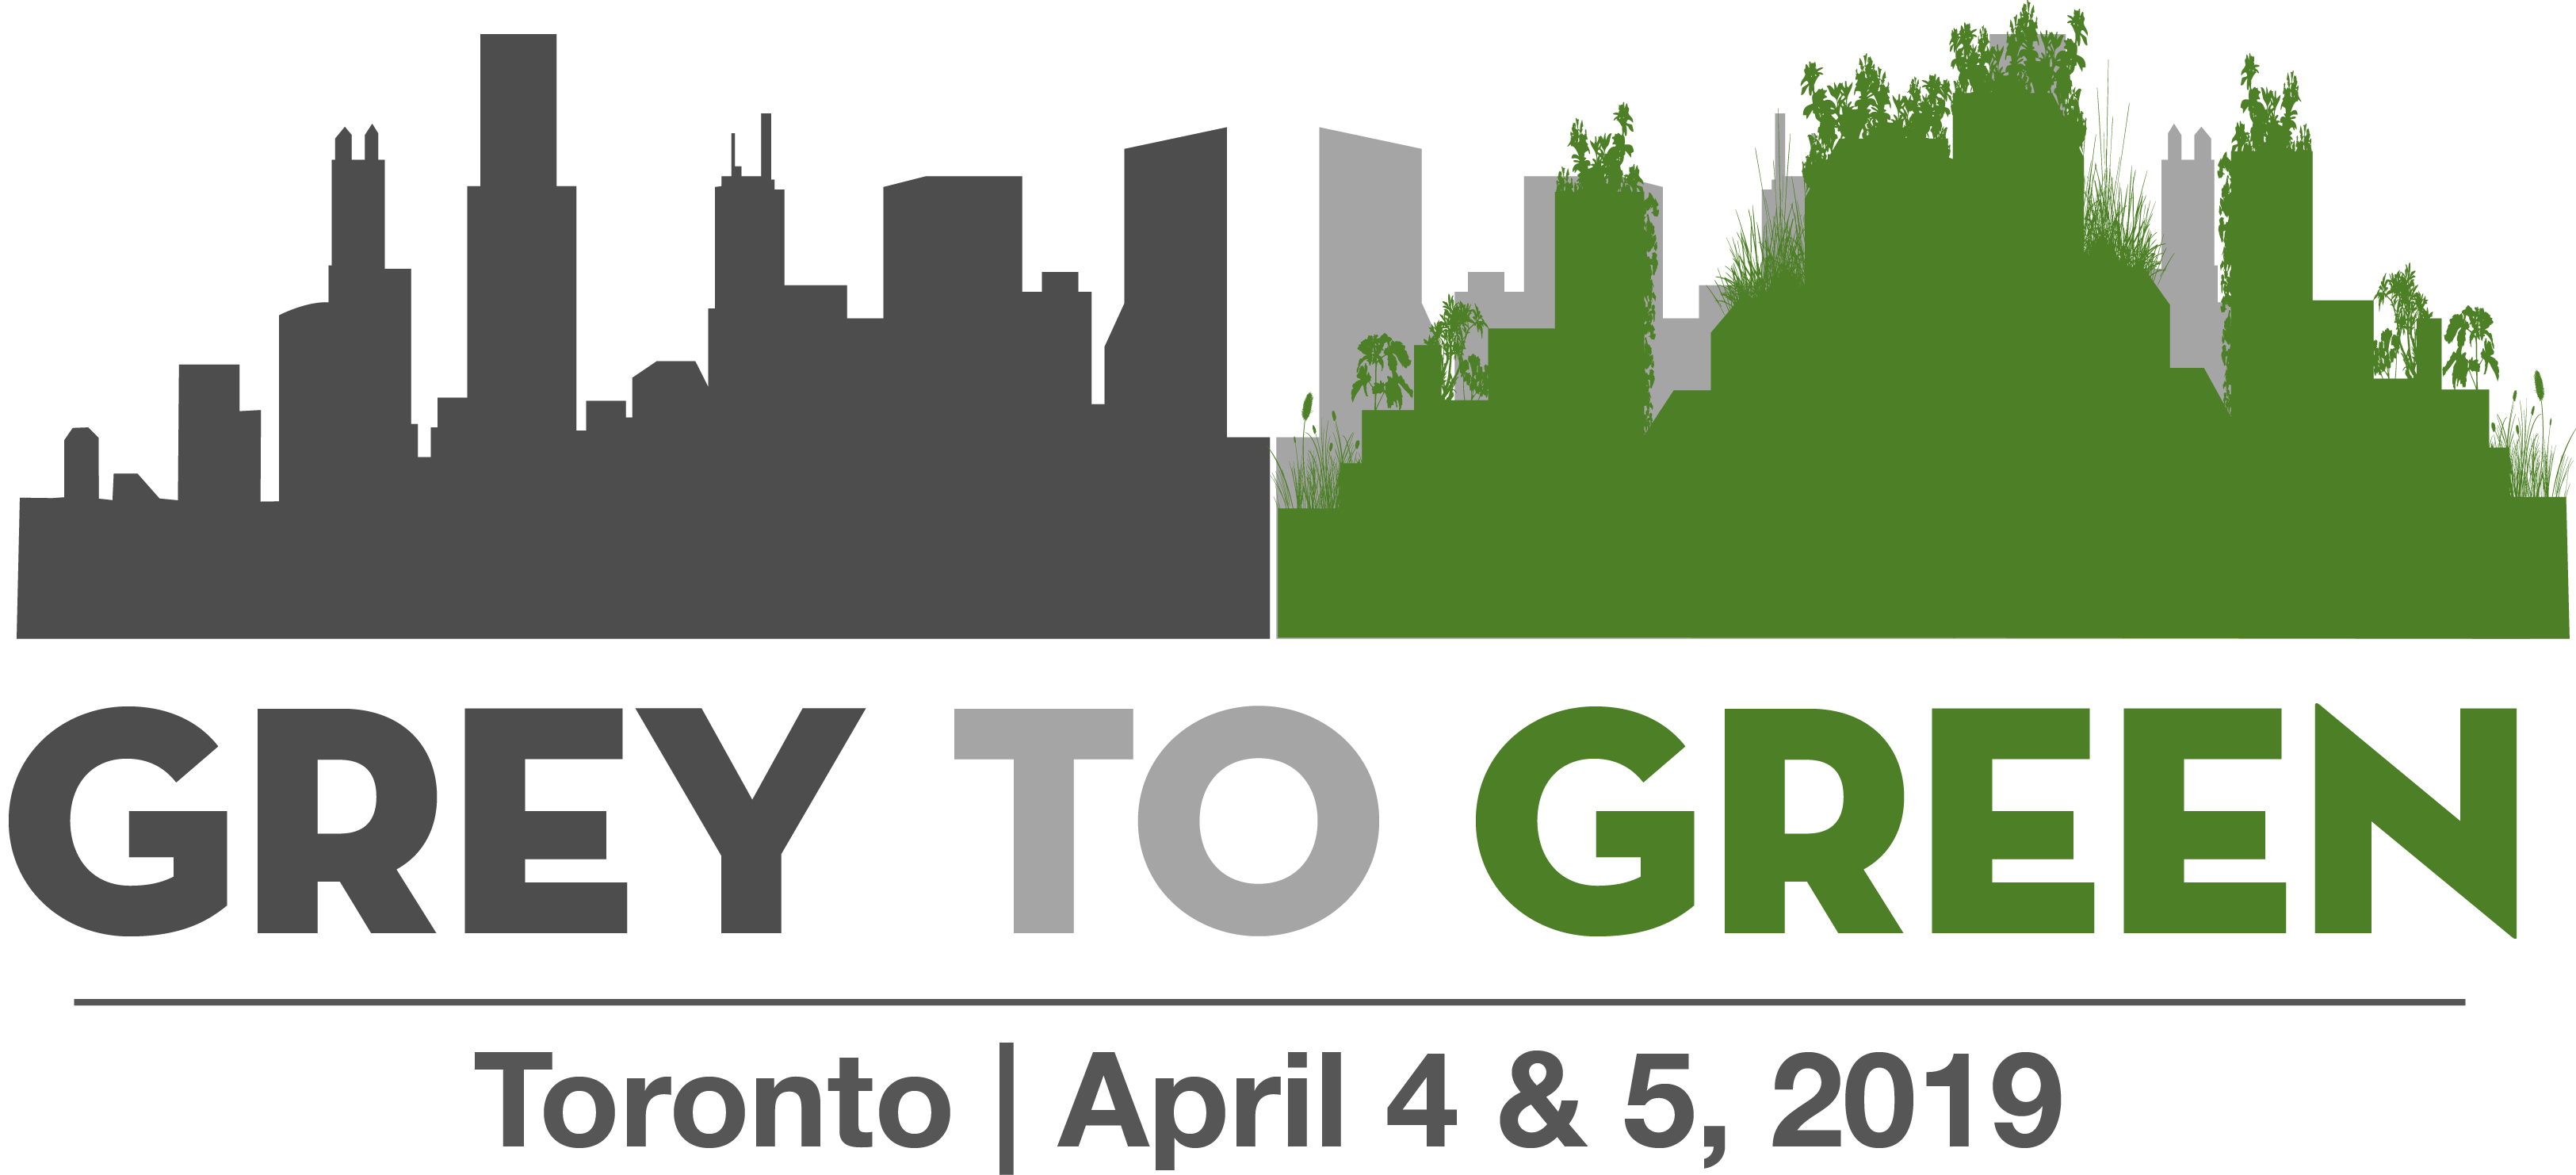 2019 Grey to Green Call for Proposals